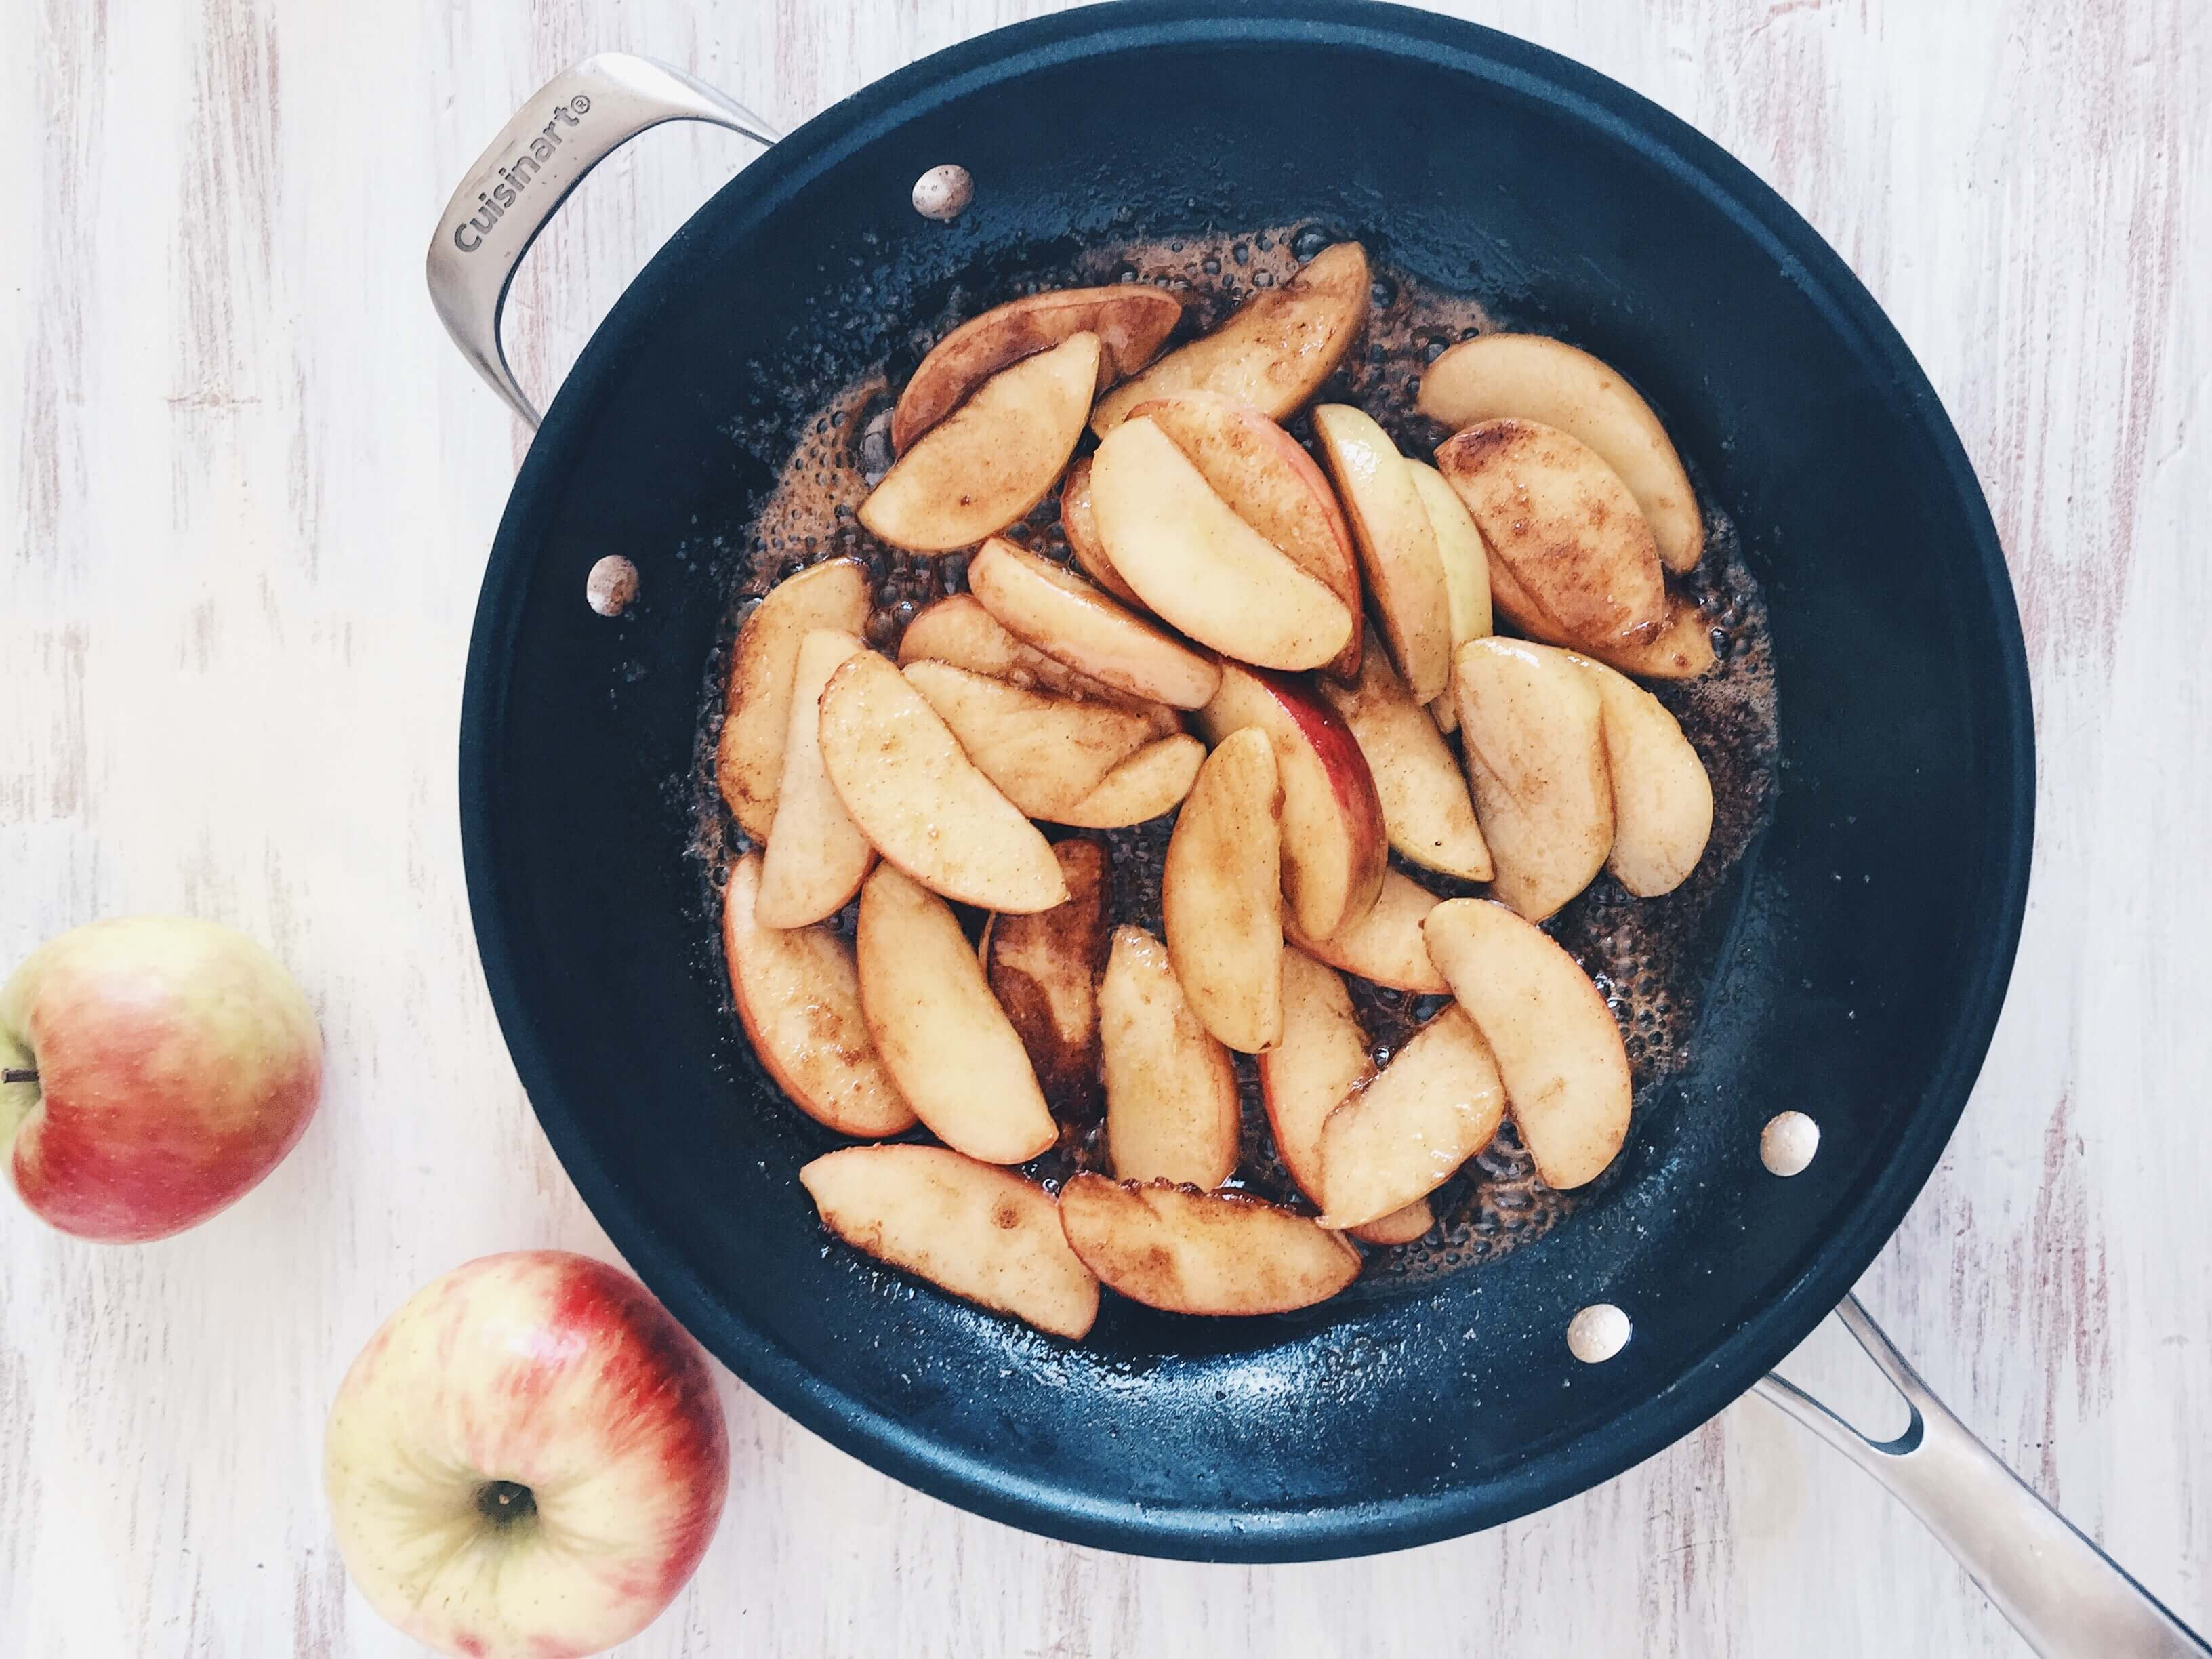 Caramelized Apples for Caramelized Apple Dutch Baby by The Messy Baker